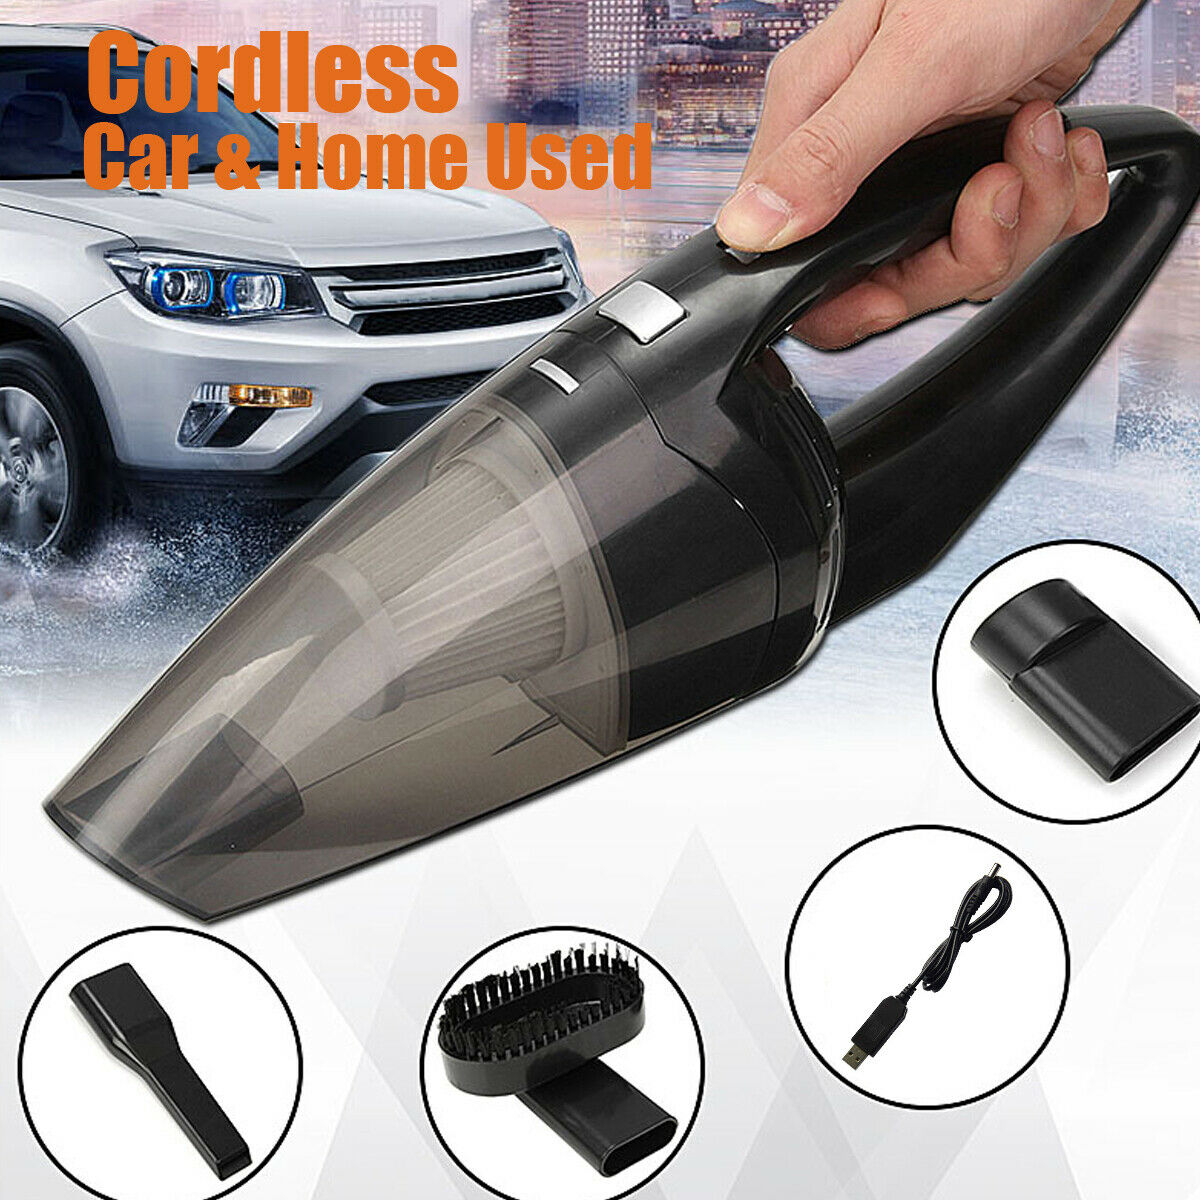 120W Car Home Cordless Vacuum Cleaner Rechargeable Wet/Dry H